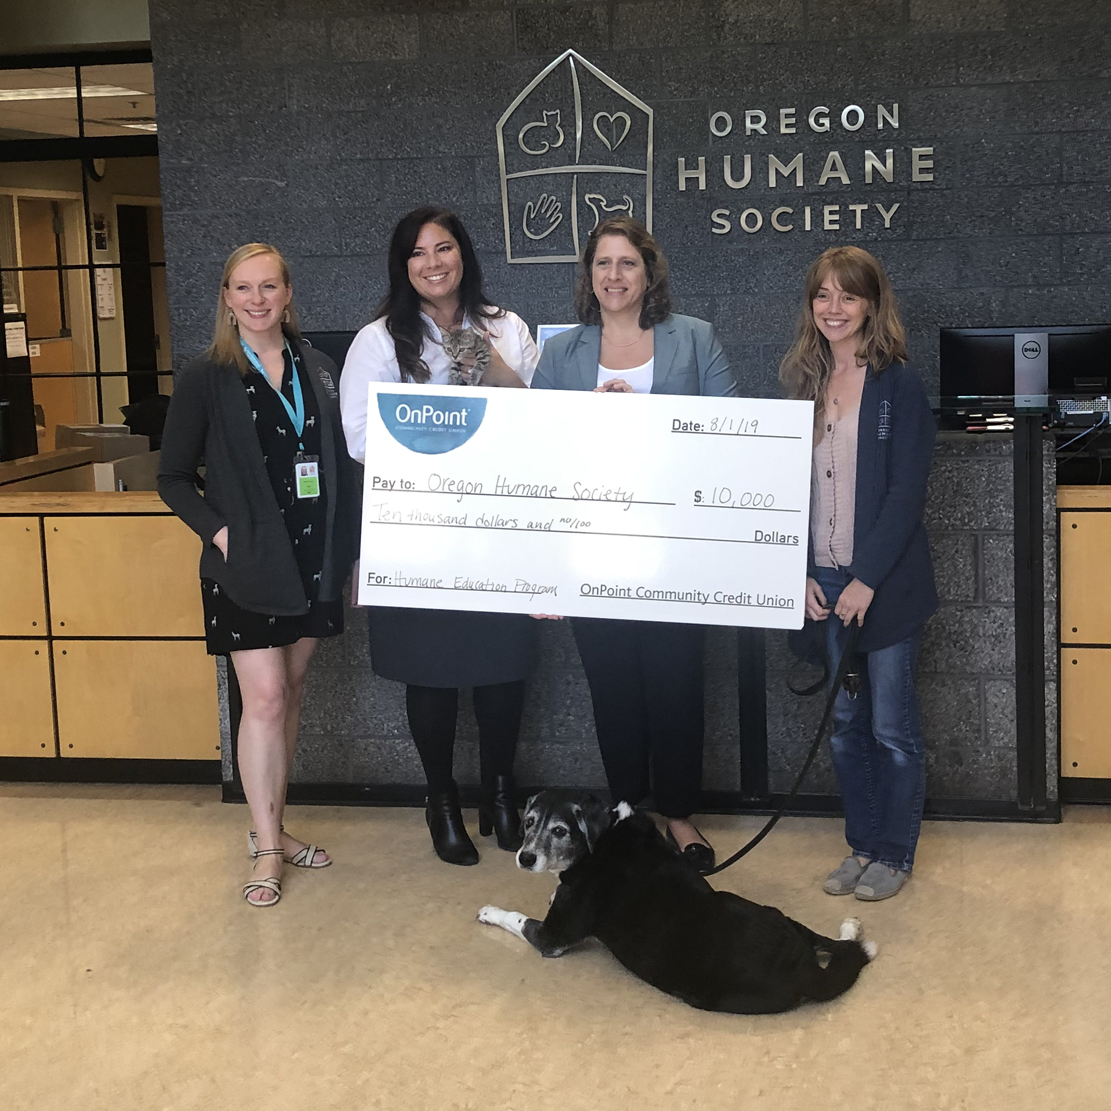 Support for Oregon Humane Society's Student Education Program